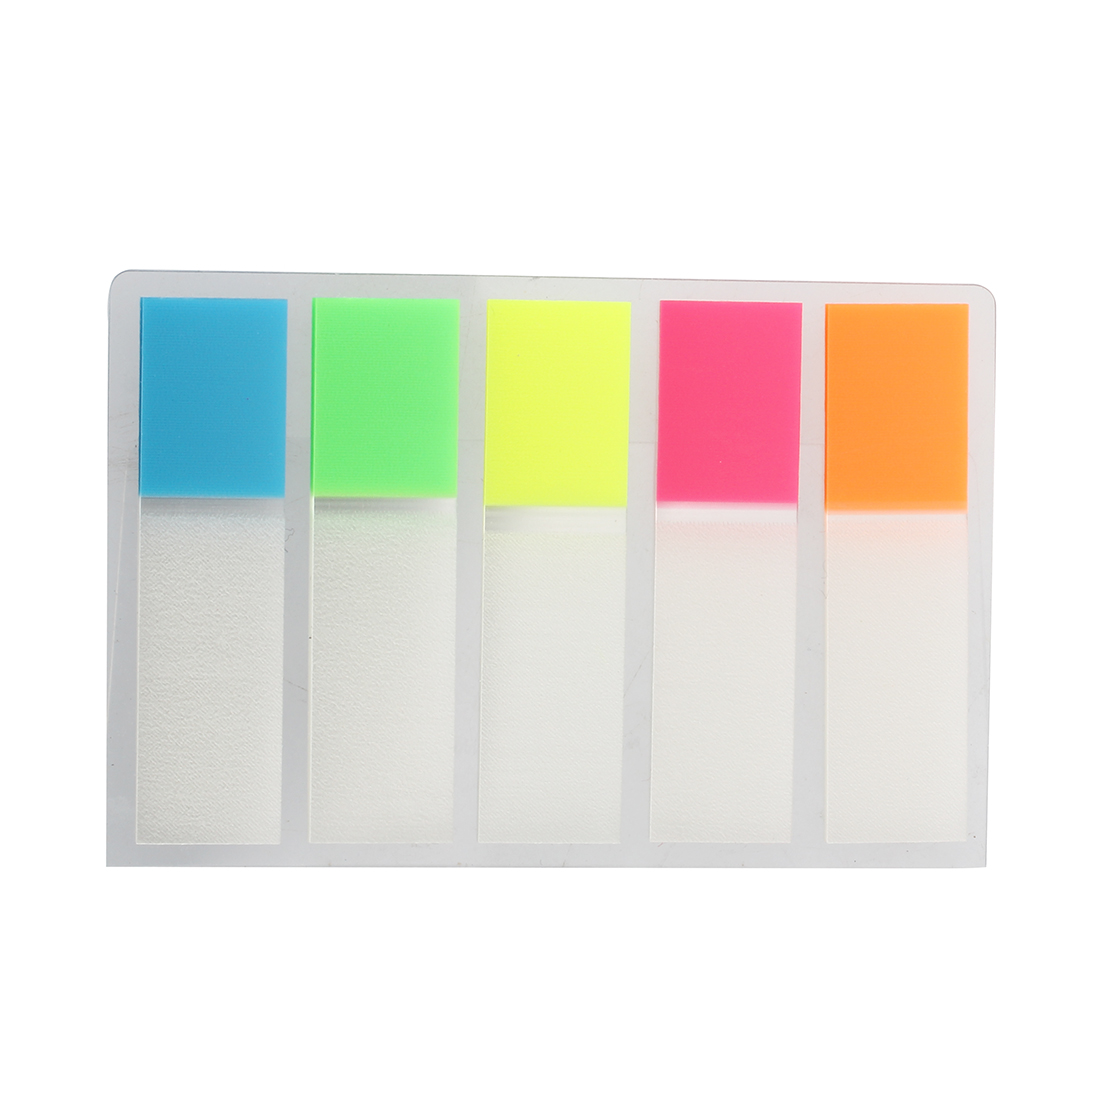 10 Note Paper Memo Pad Sticky Post Notepad Sticker Bookmark Post-it Stationery